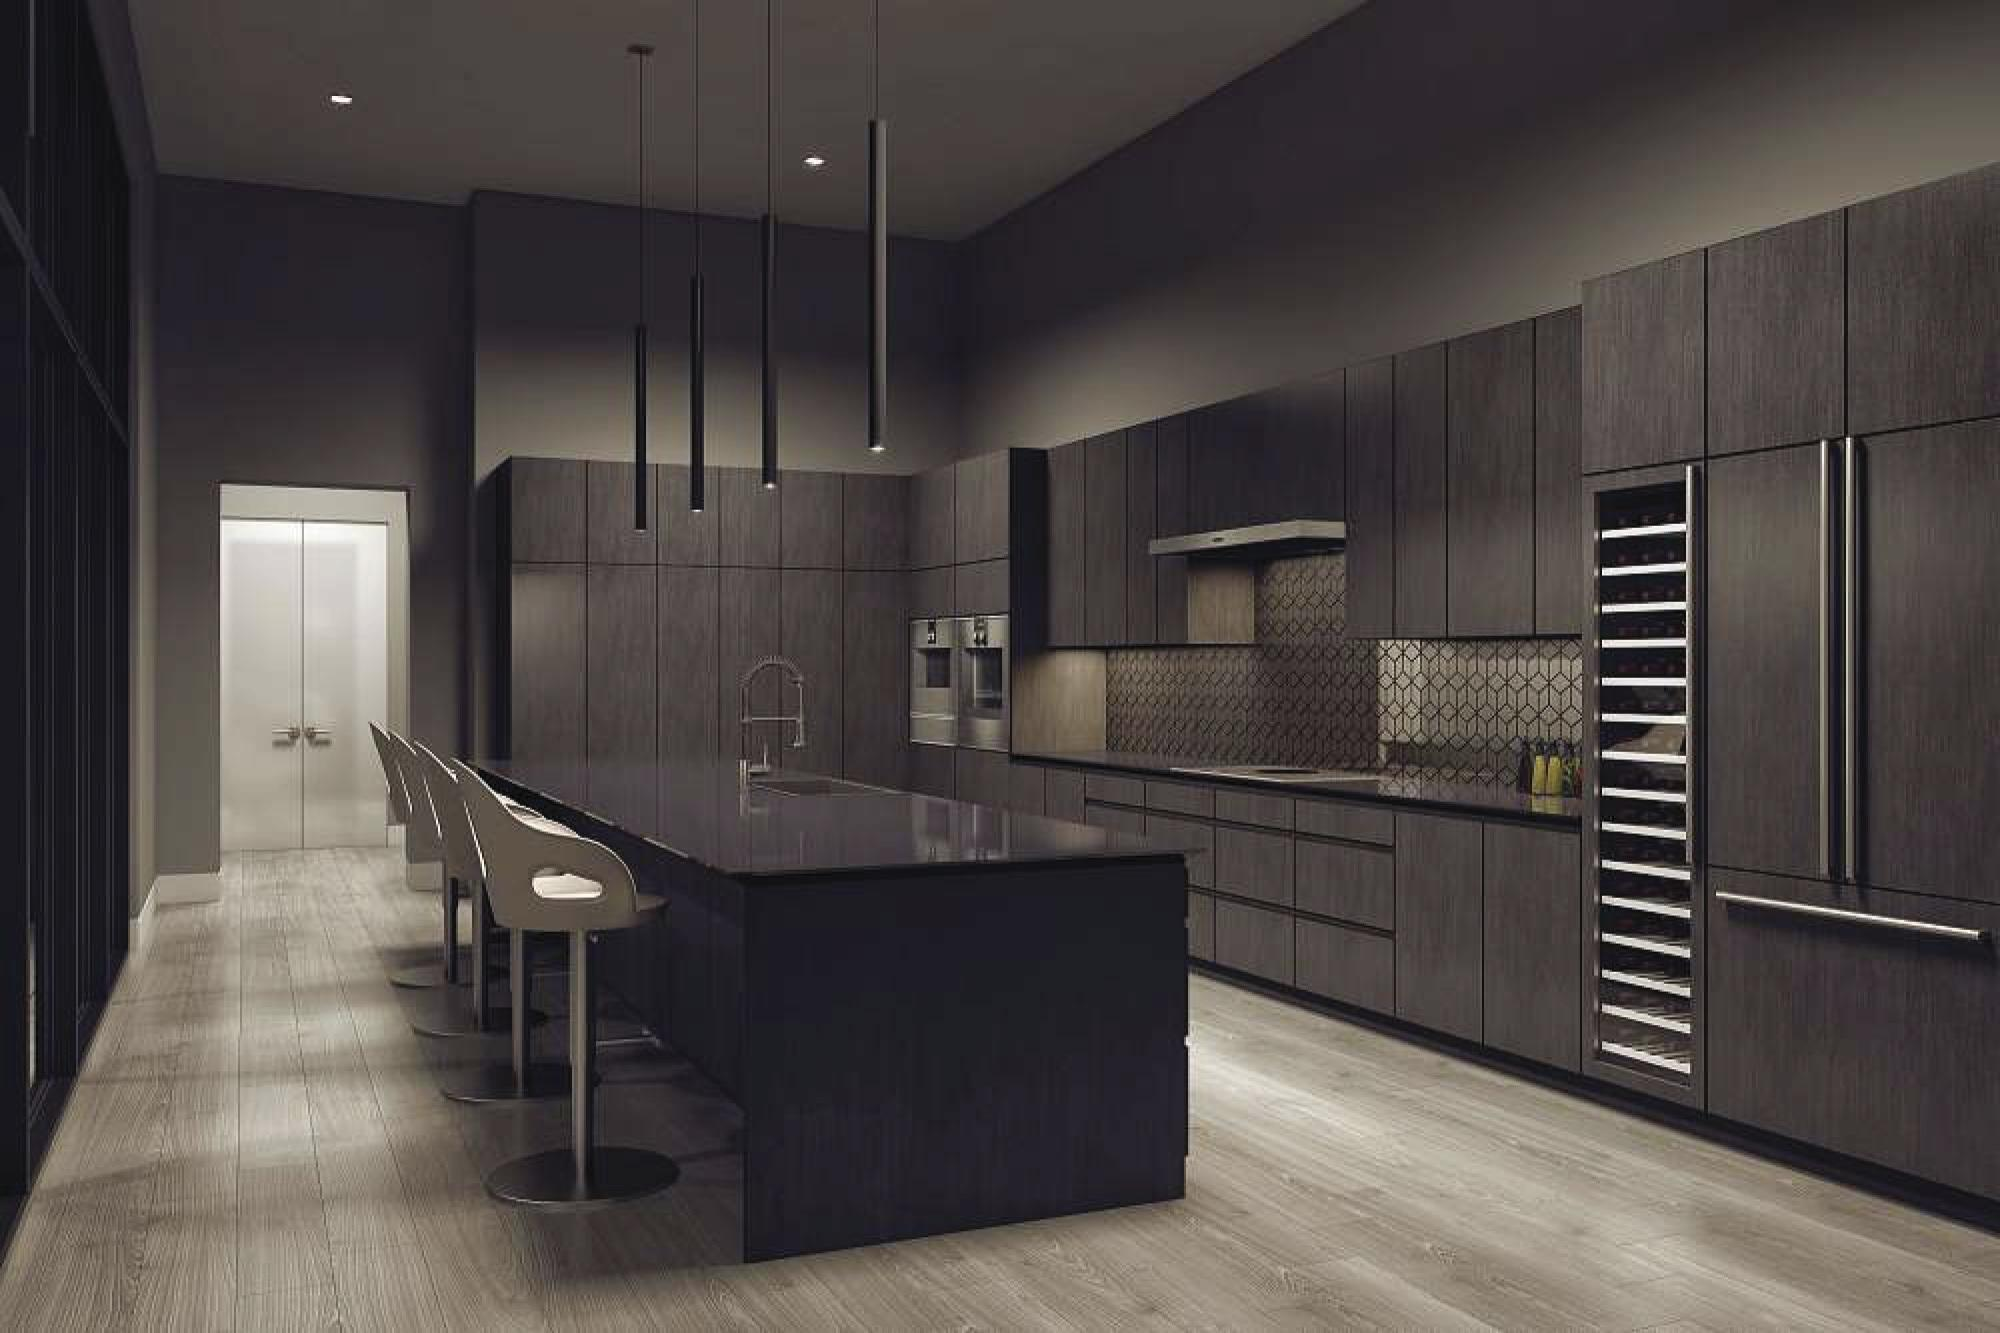 On the Market/Condo Life: Kitchens provide necessary luxe touch in high-rise living